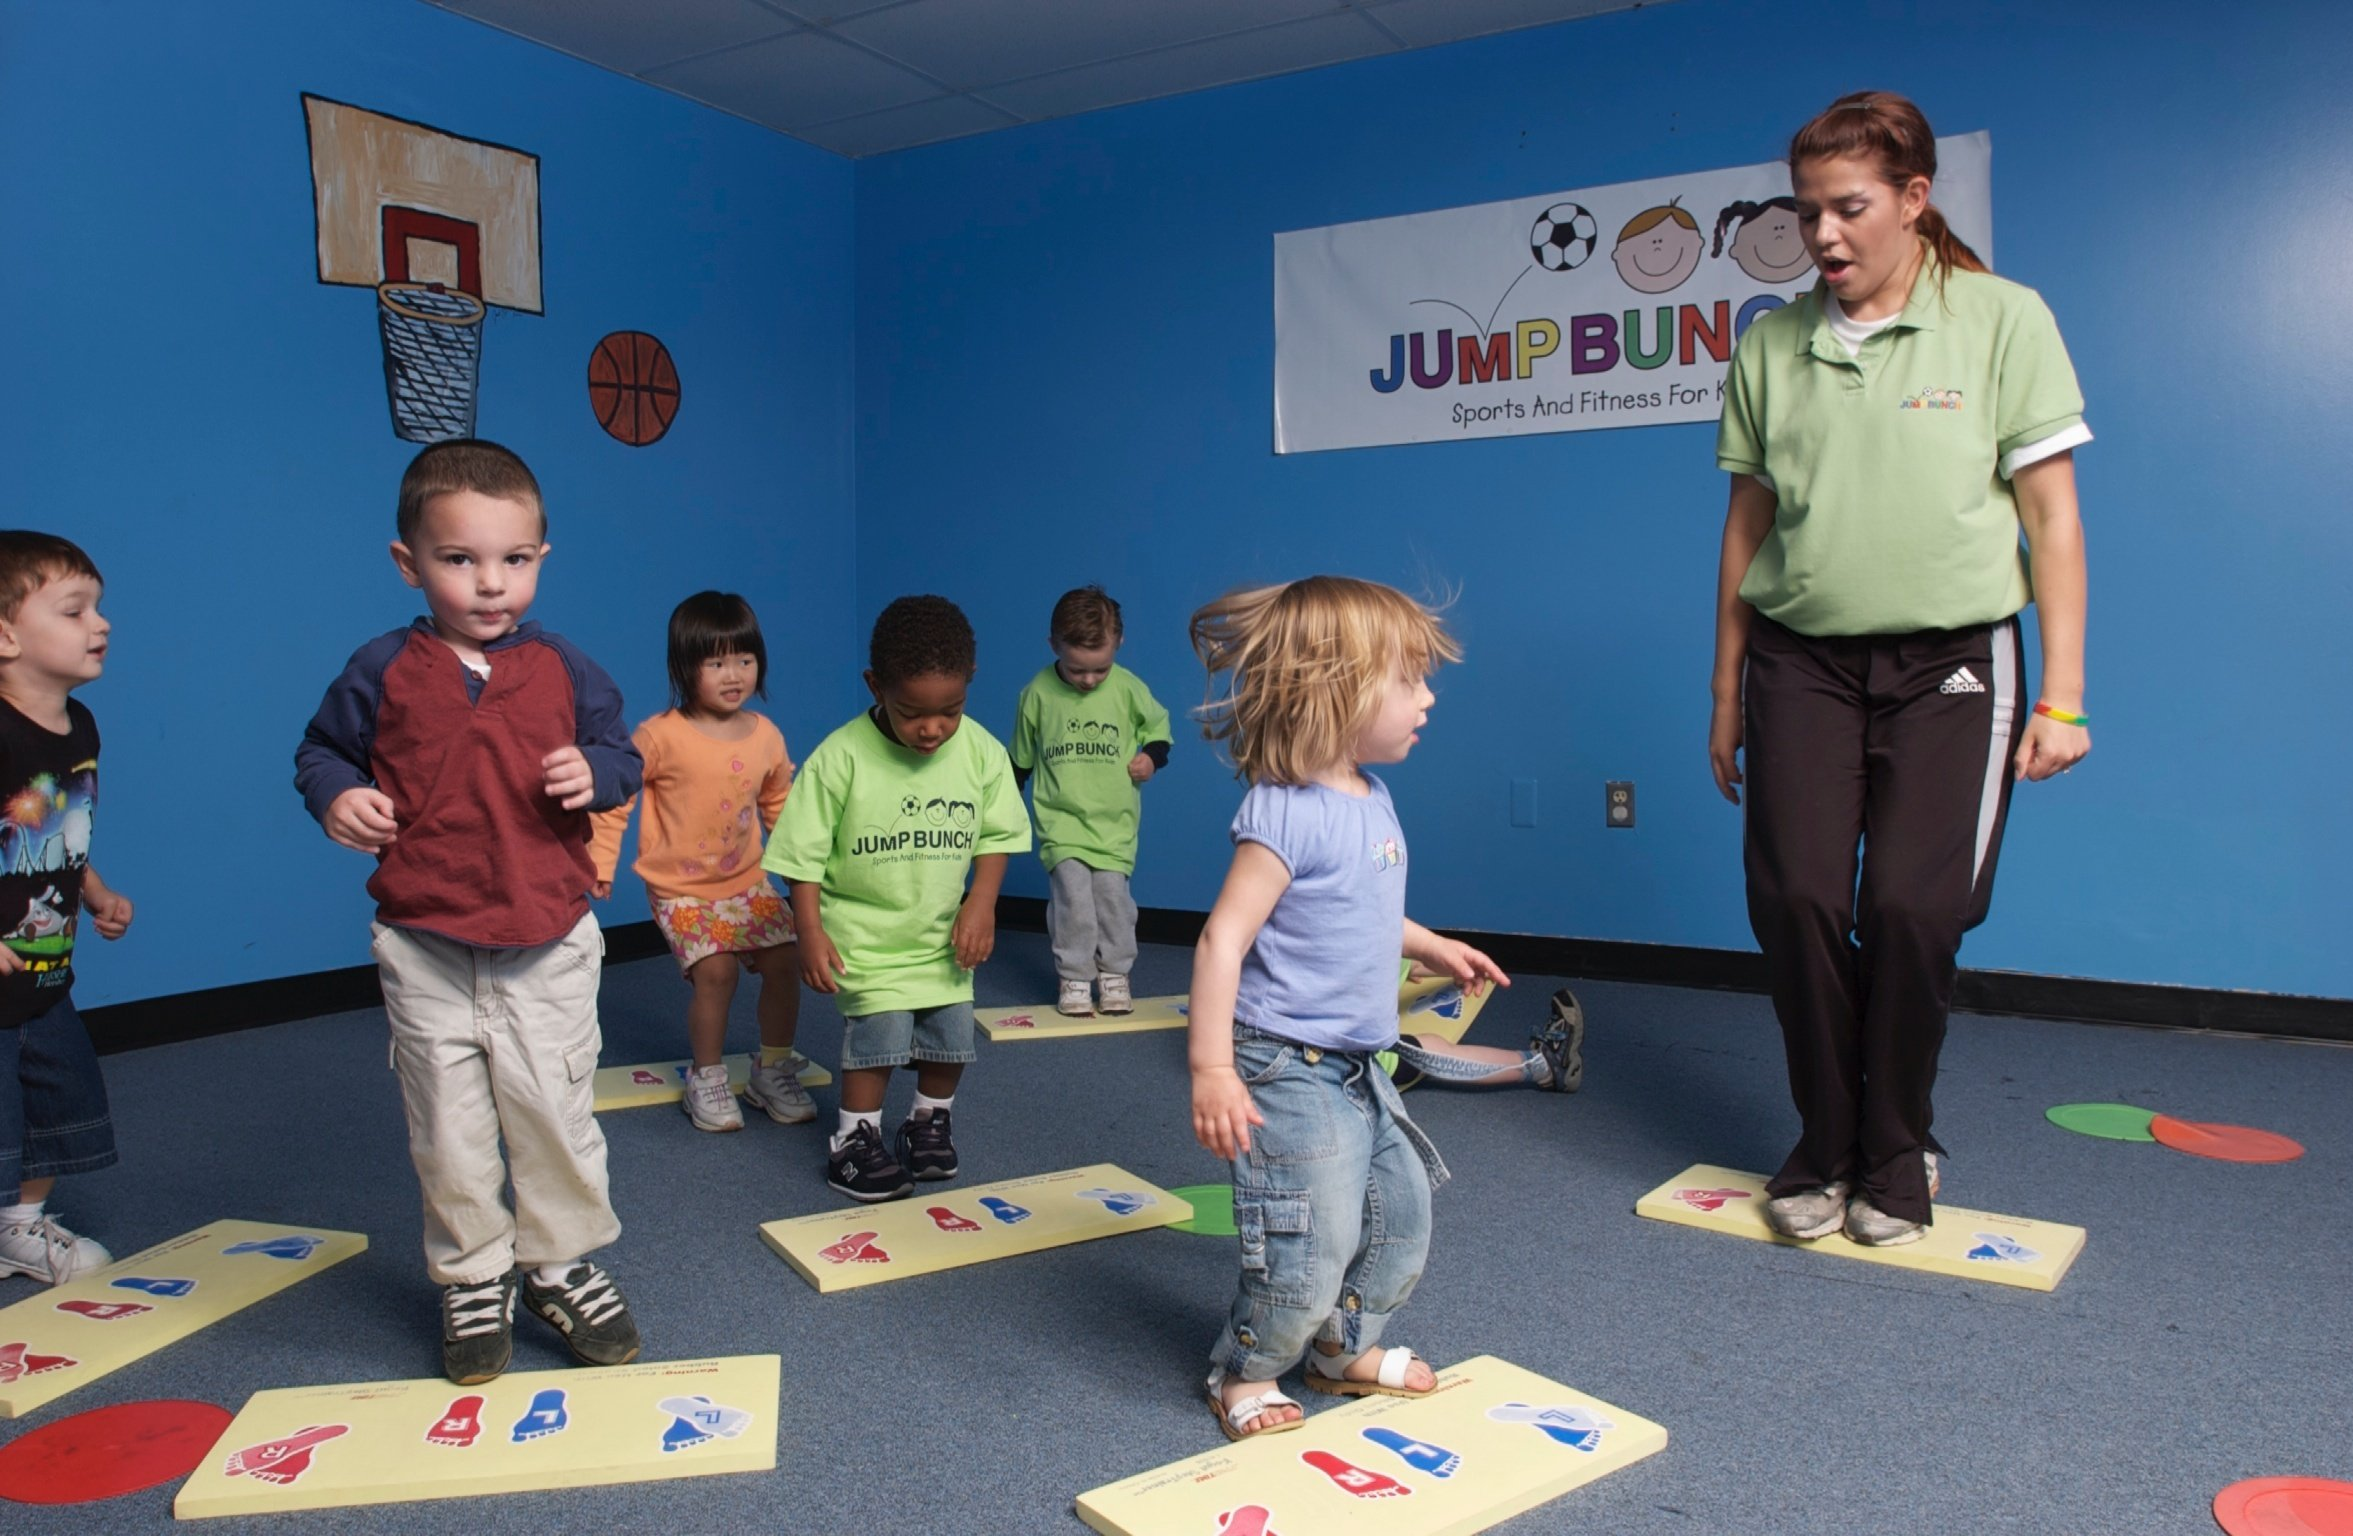 JumpBunch Naugatuck Valley | A Friendly Introduction to Sports and Fitness!